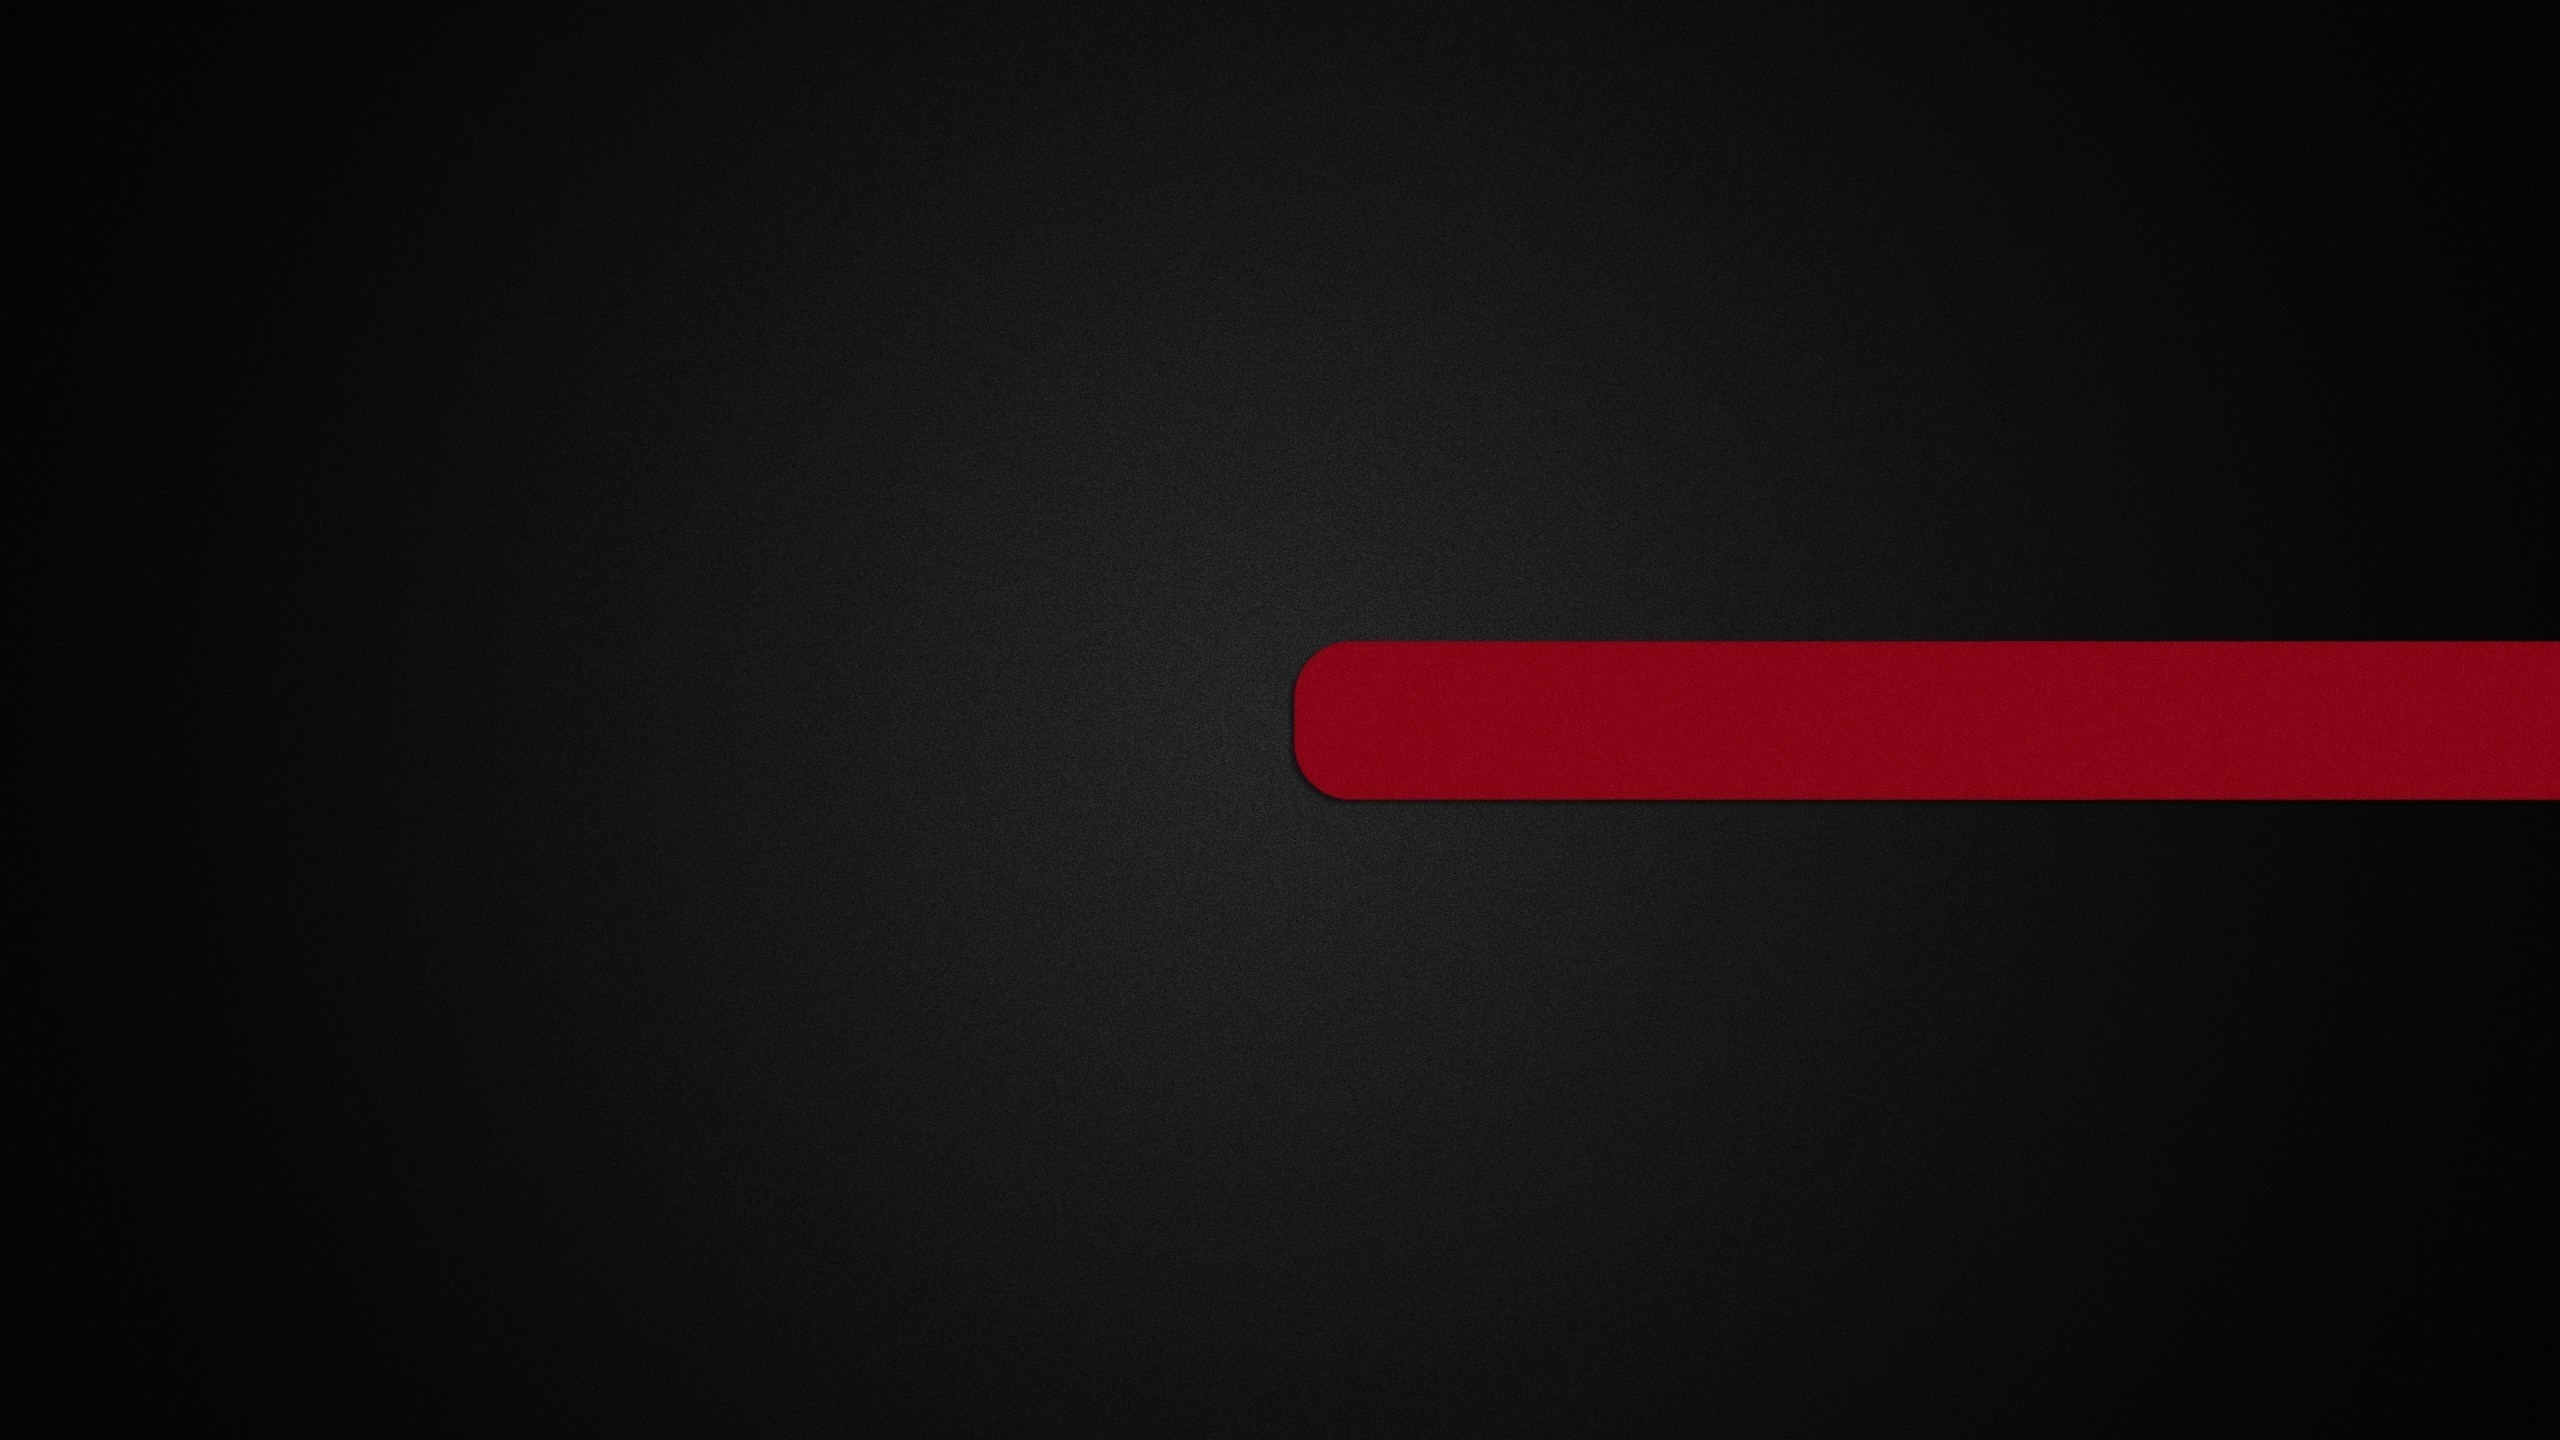 2560x1440 Black And Red Line - DOWNLOAD FREE HD WALLPAPERS